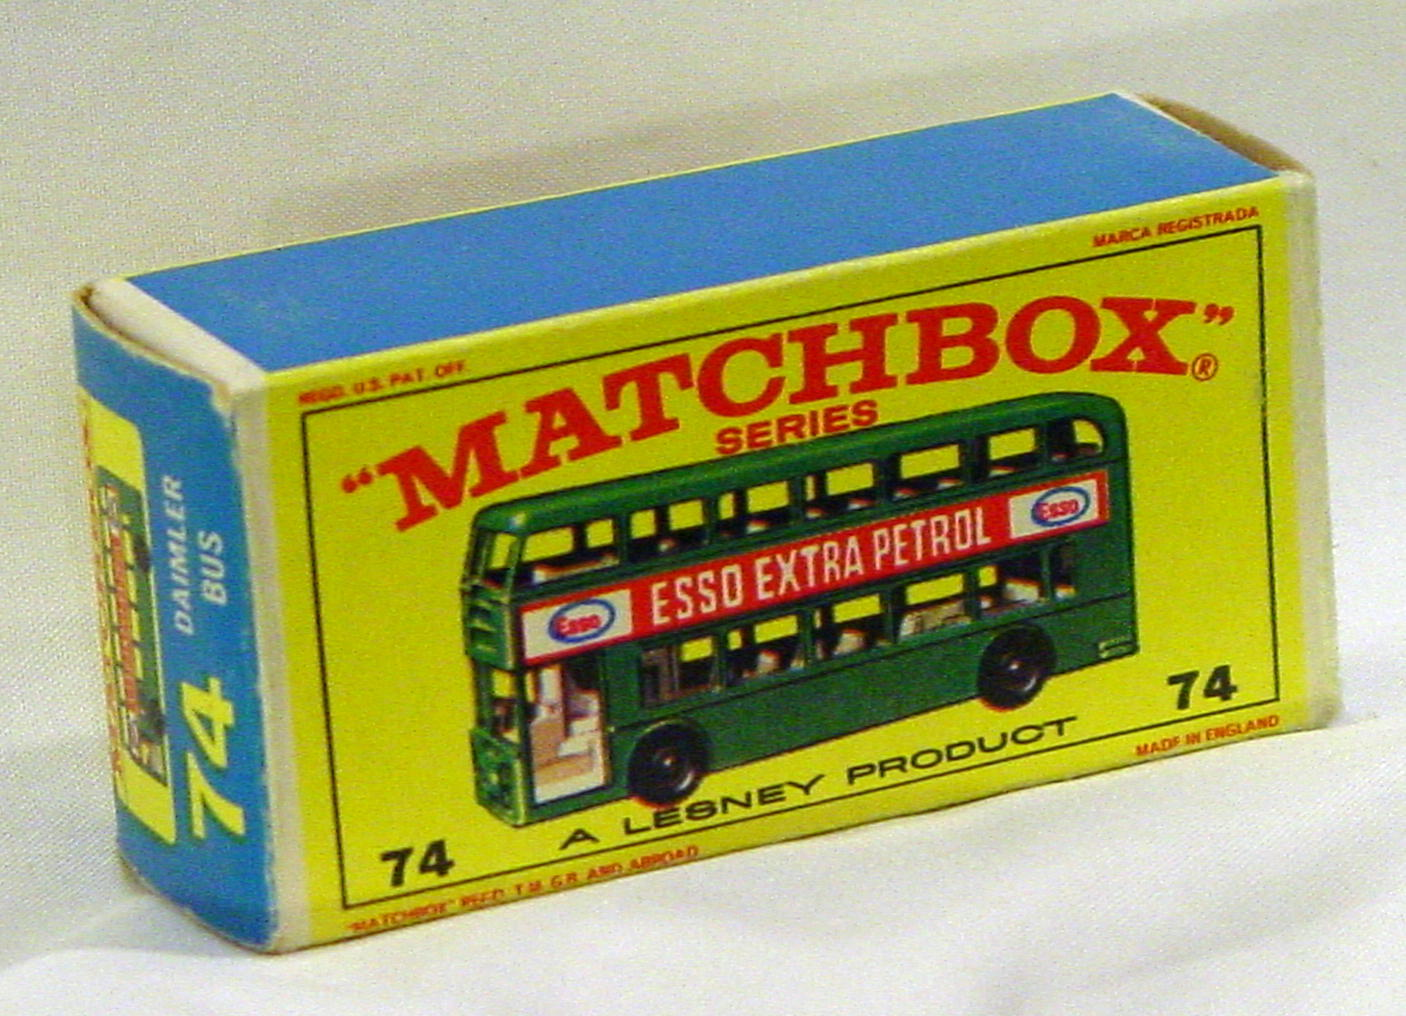 Empty Box 74 B - C9 E4 BOX ONLY showing green model